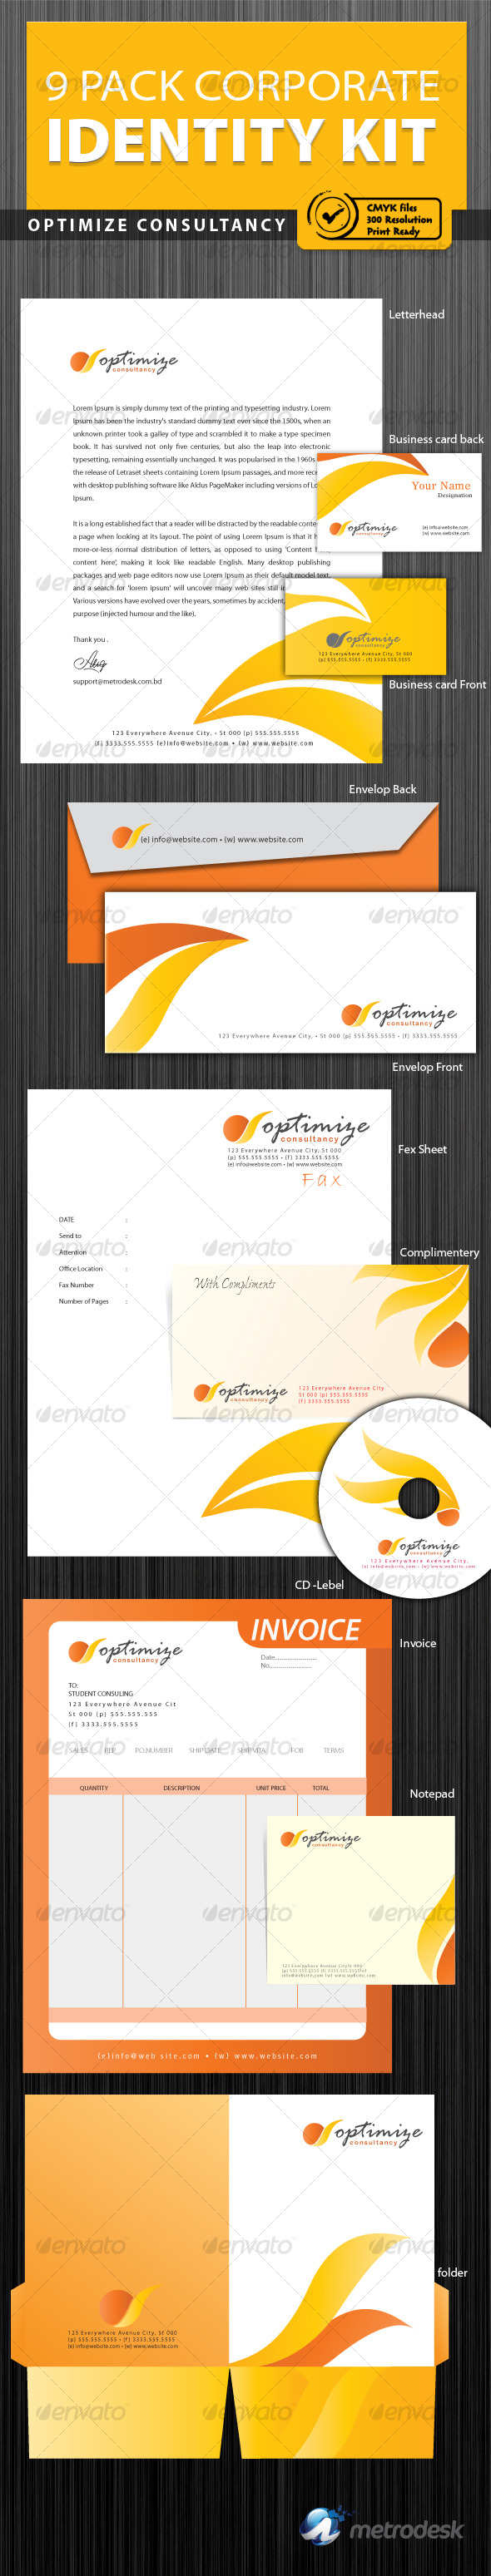 Optimize Consultancy corporate identity [9pack] - Stationery Print Templates